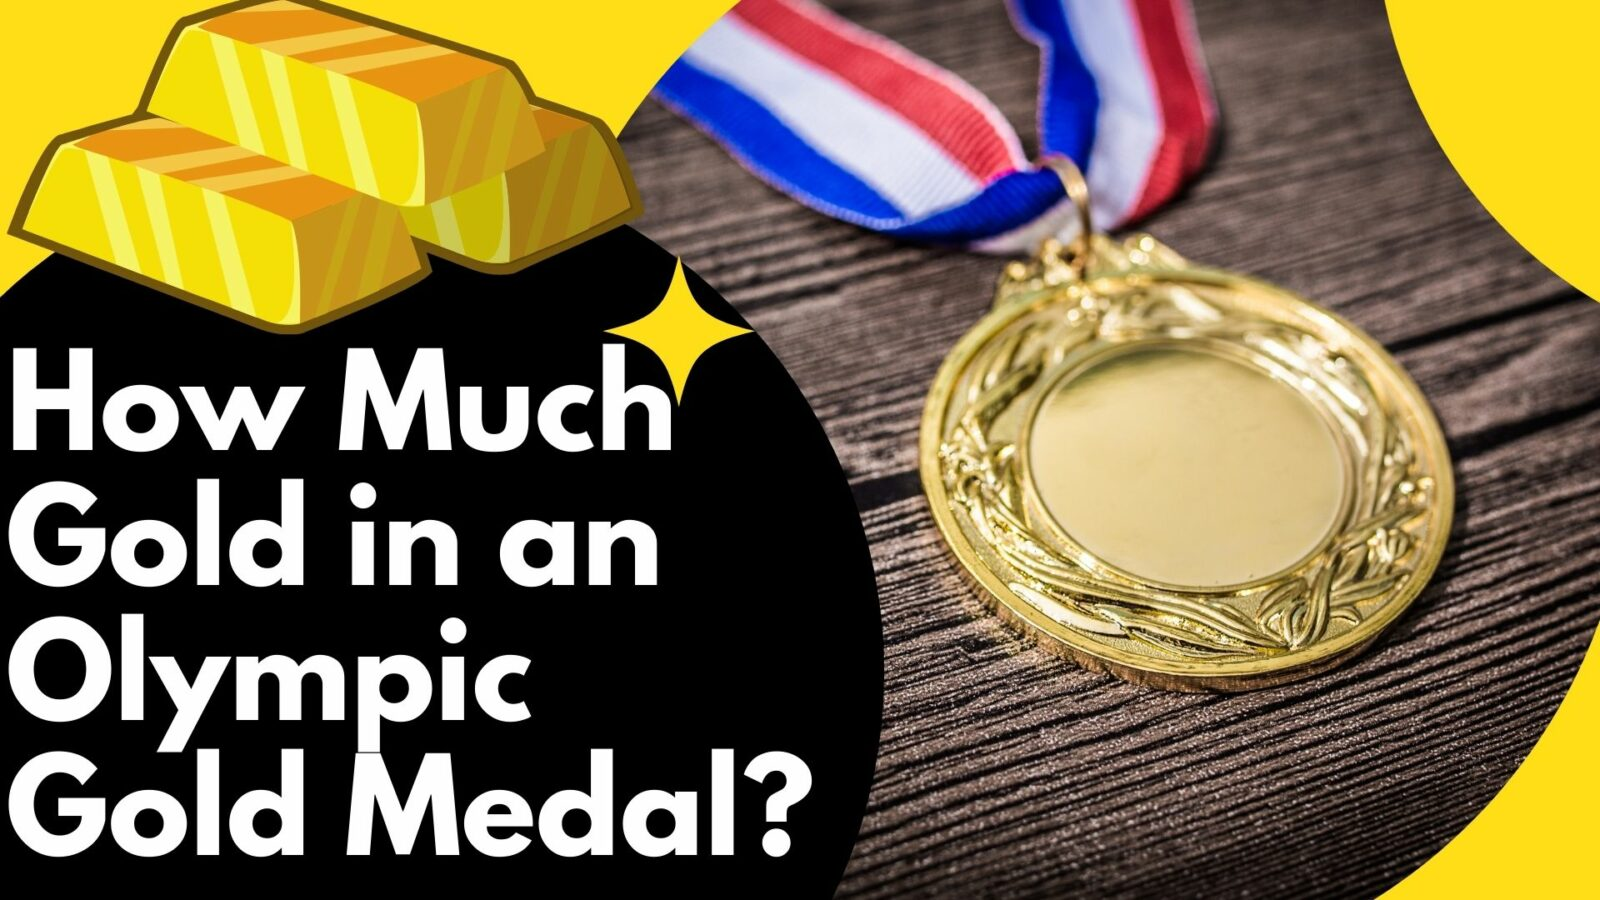 How Much Gold in an Olympic Gold Medal